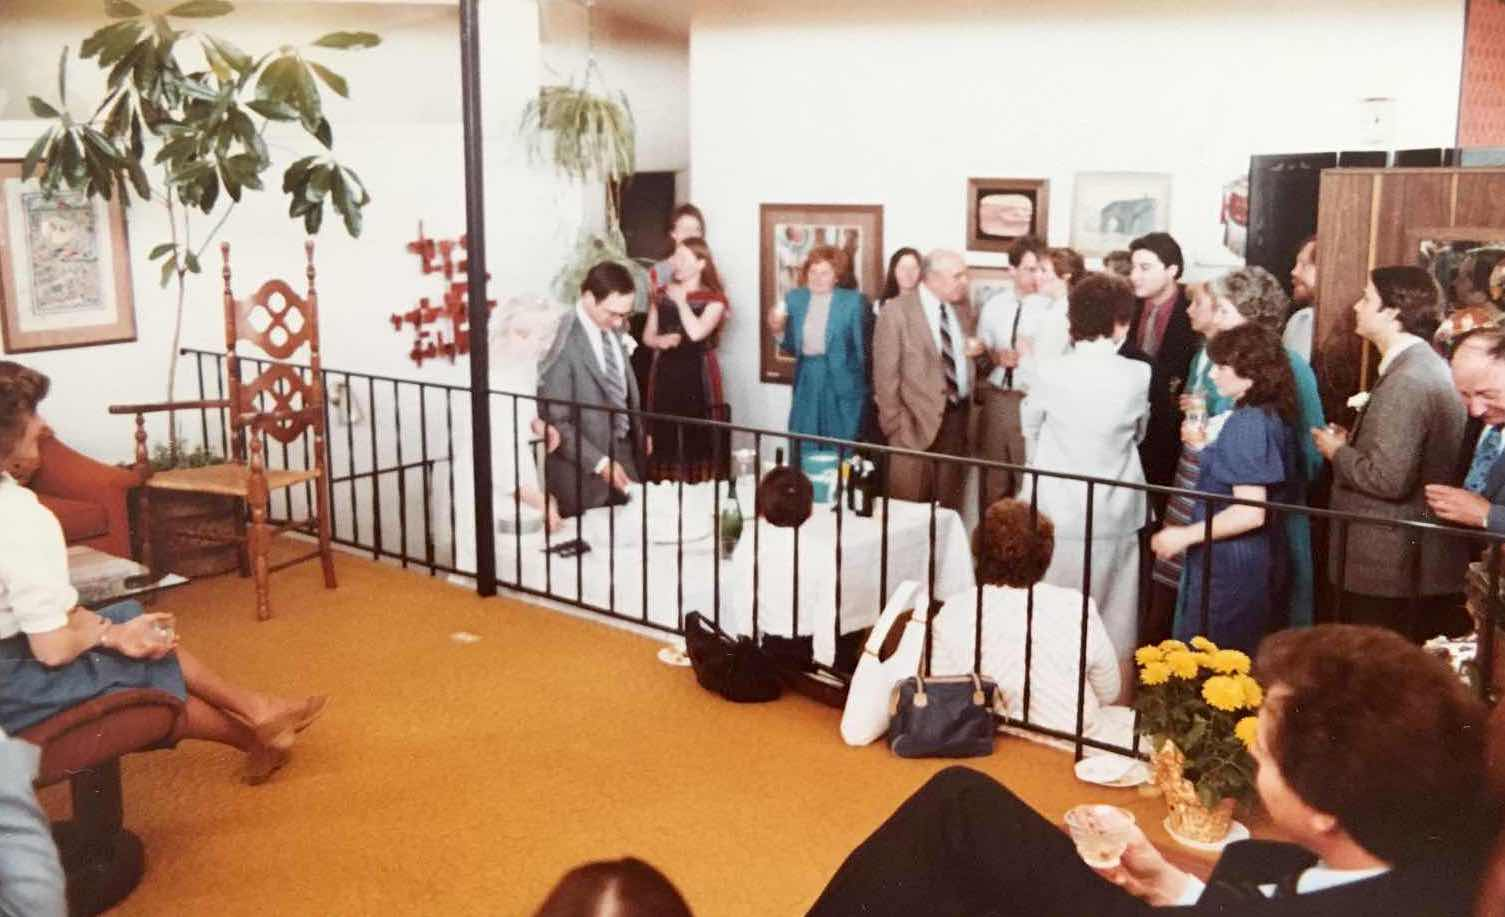 When the Pattersons moved the staircase to the center of the living room, they removed the original railing, seen here.